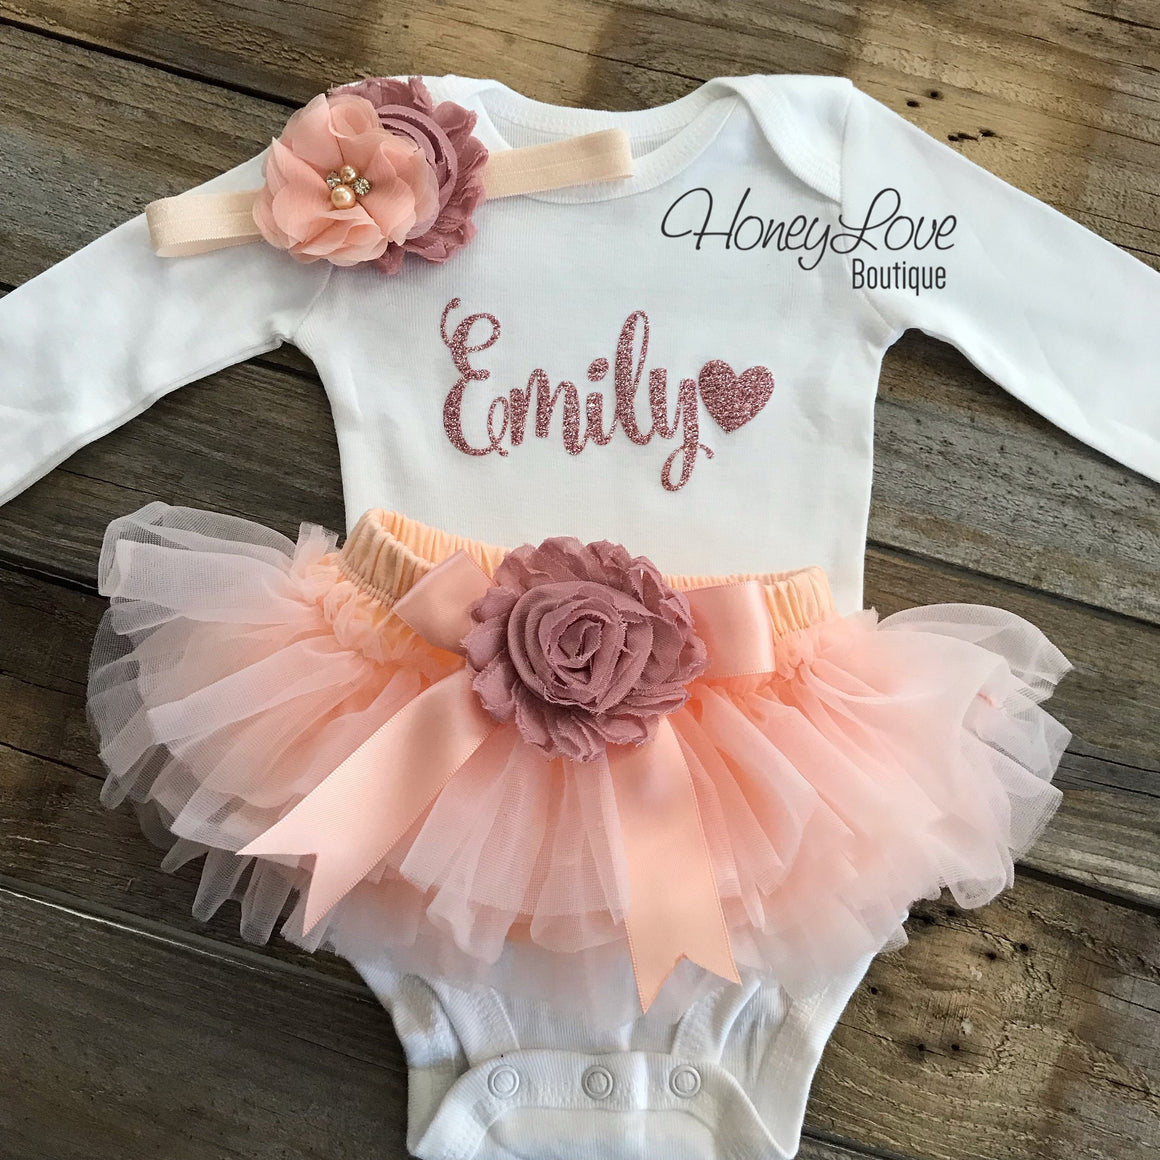 PERSONALIZED Name Outfit - Rose Gold glitter and Peach/Vintage Pink - embellished tutu skirt bloomers - HoneyLoveBoutique